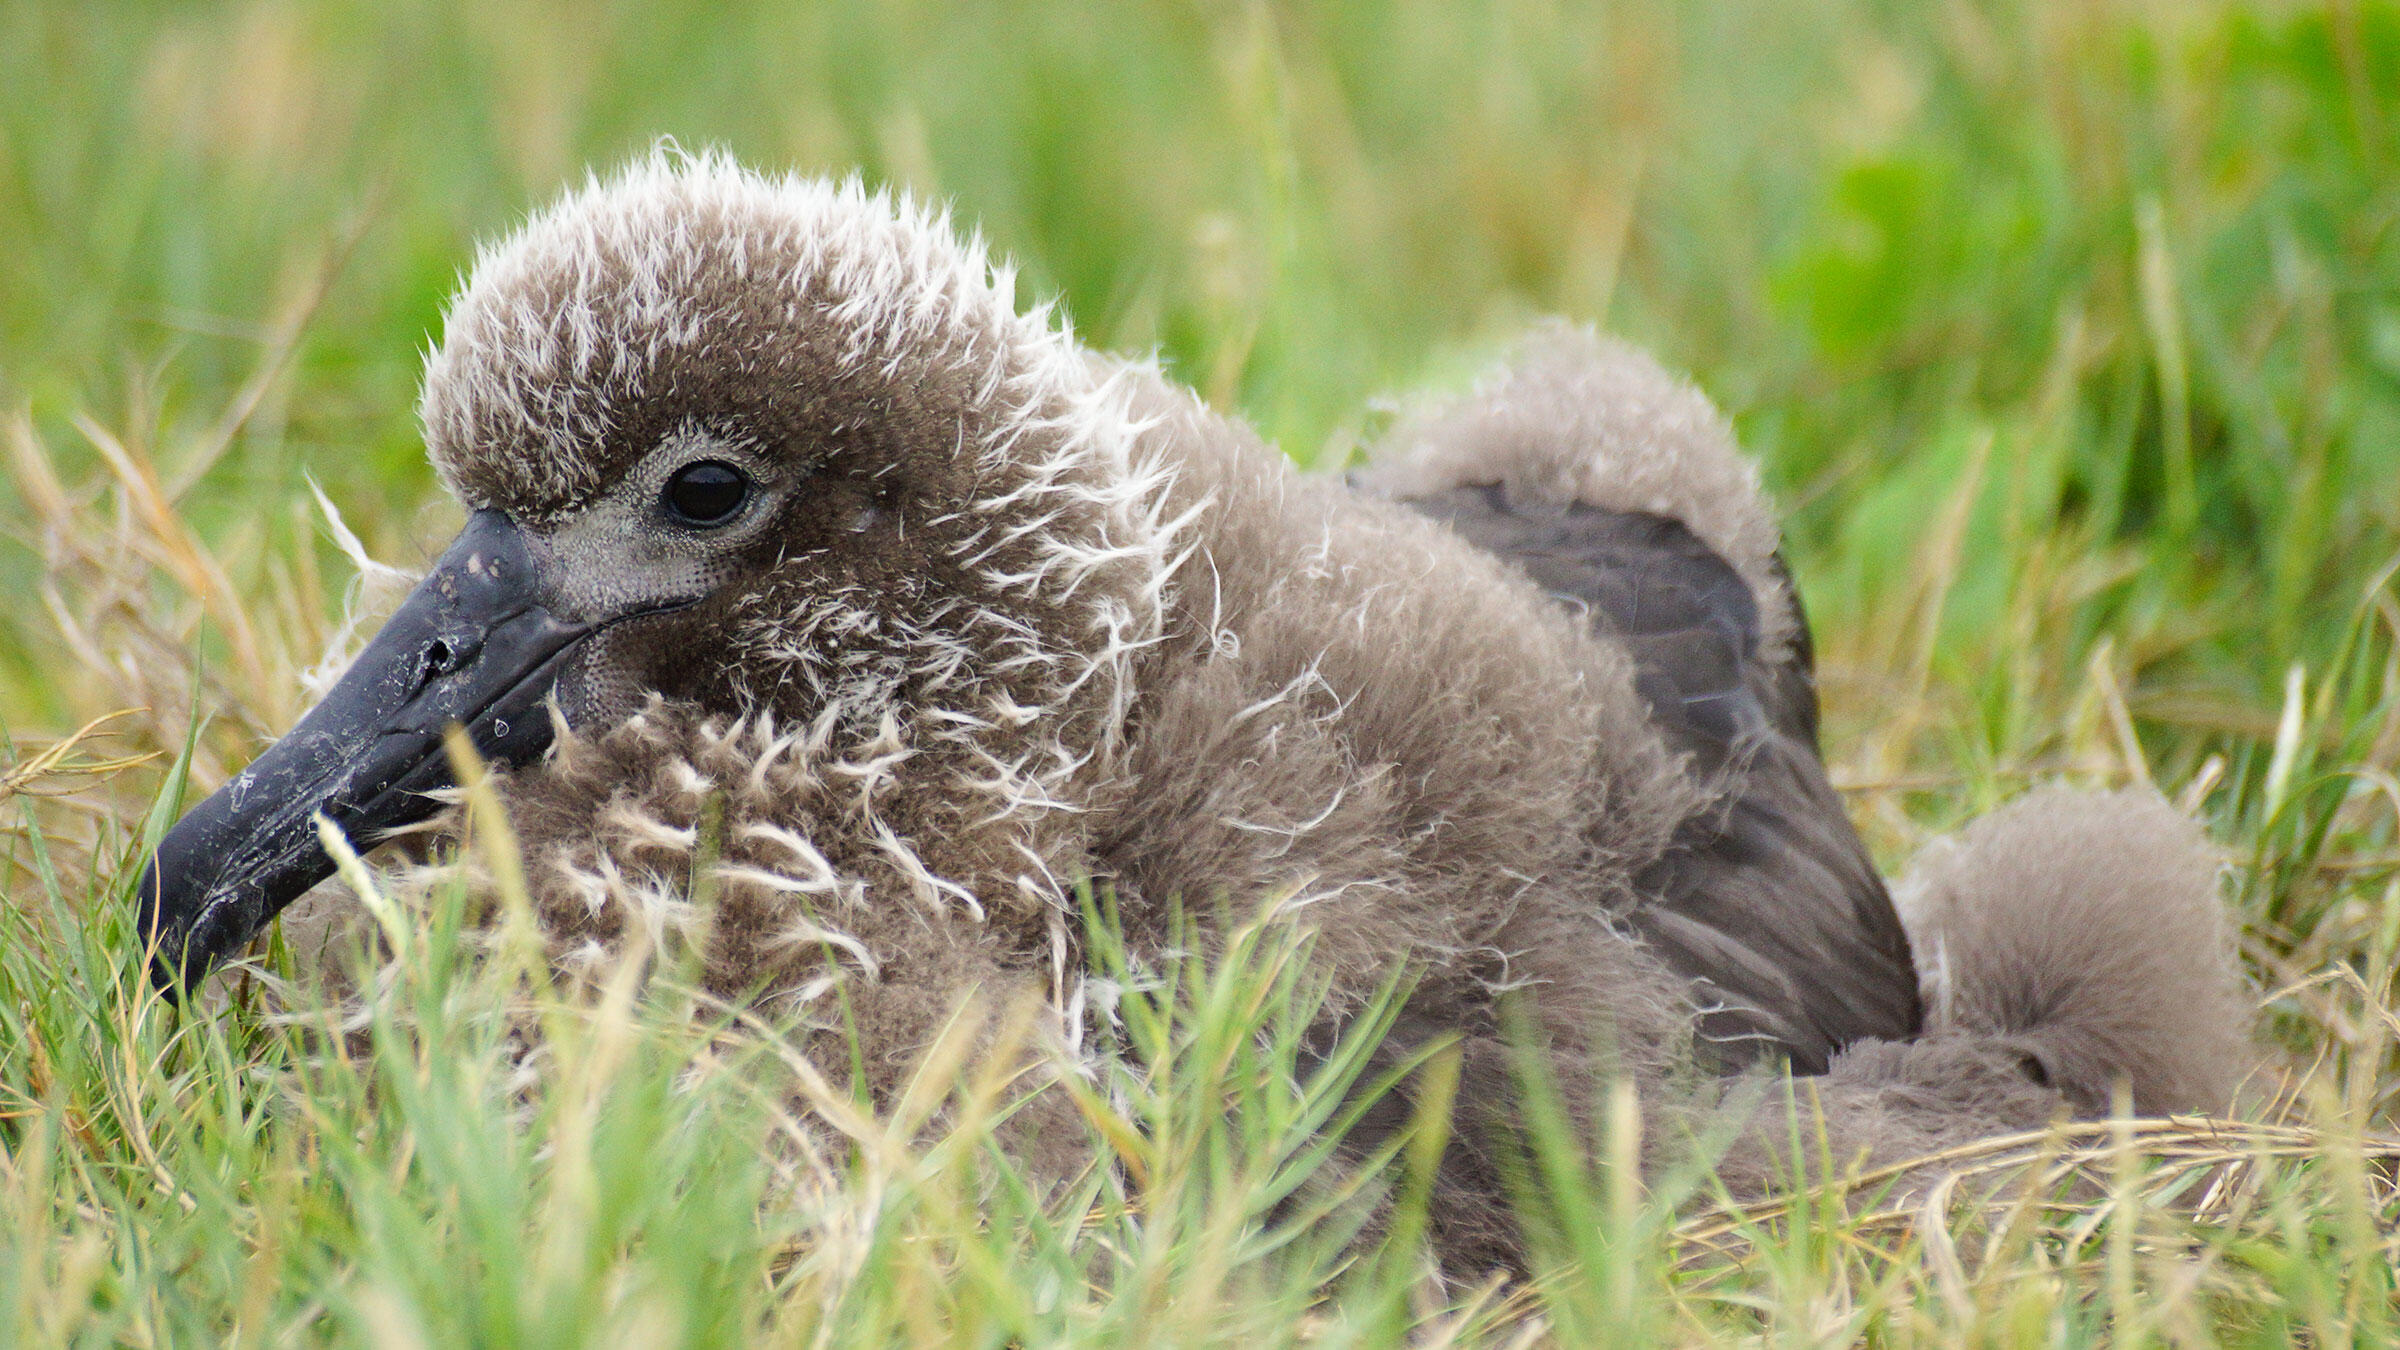 Nine, one of the founding members of a new Laysan Albatross colony on the main Hawaiian Islands, roosts in the grass, decked out in intermediate plumage—half adult flight feathers, half gray down. Rachel Fisher